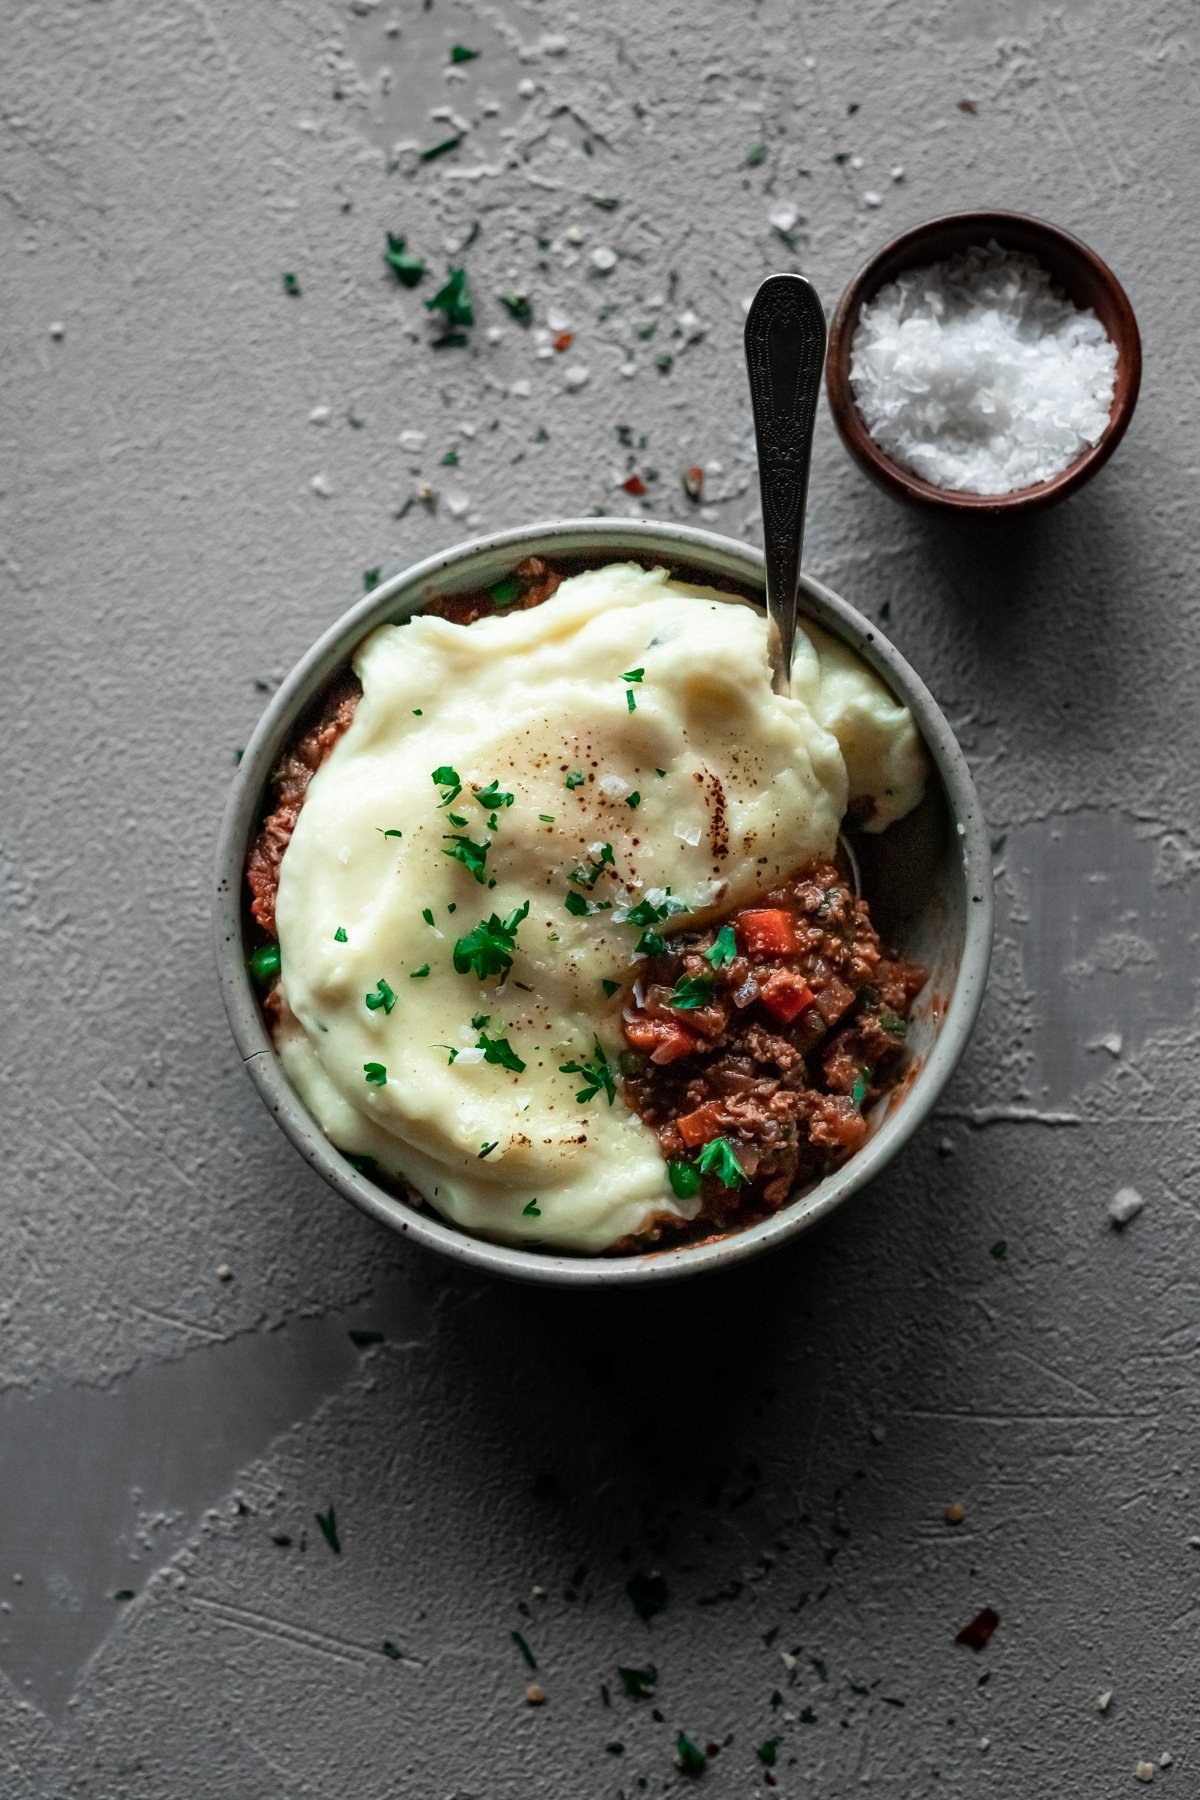 bowl with easy shepherd's pie recipe inside with a fork